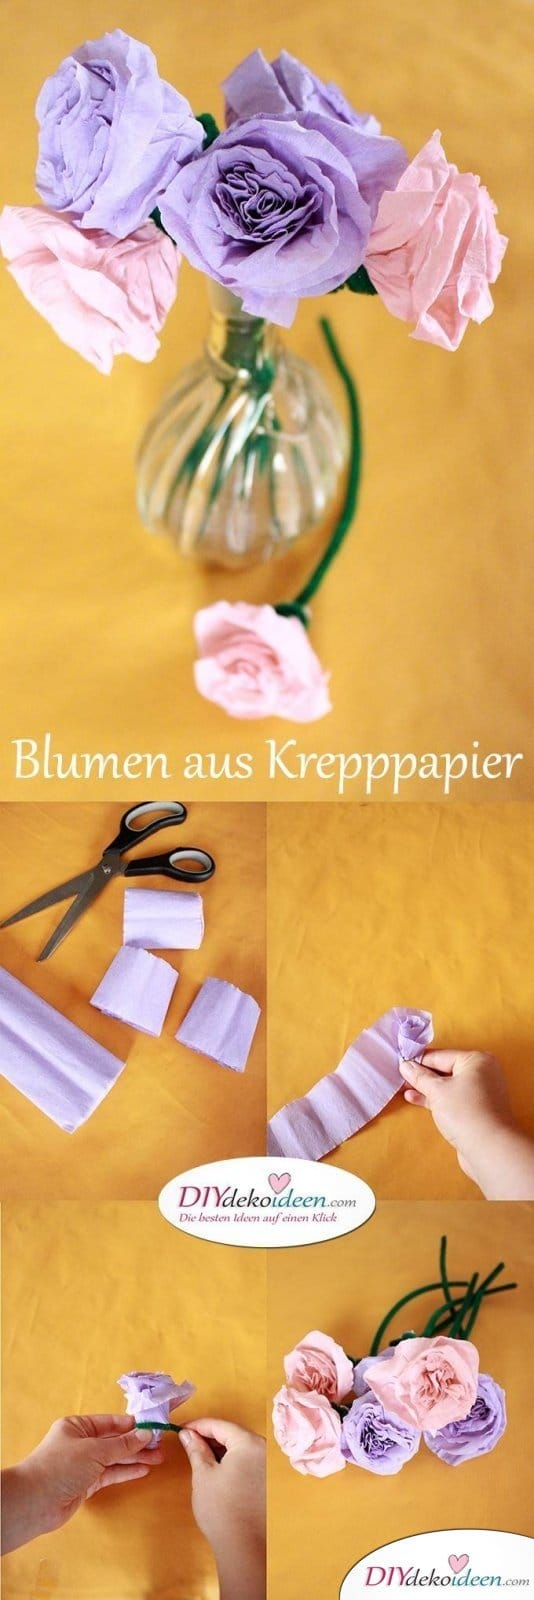 spielerisch rosen basteln mit krepppapier diy. Black Bedroom Furniture Sets. Home Design Ideas